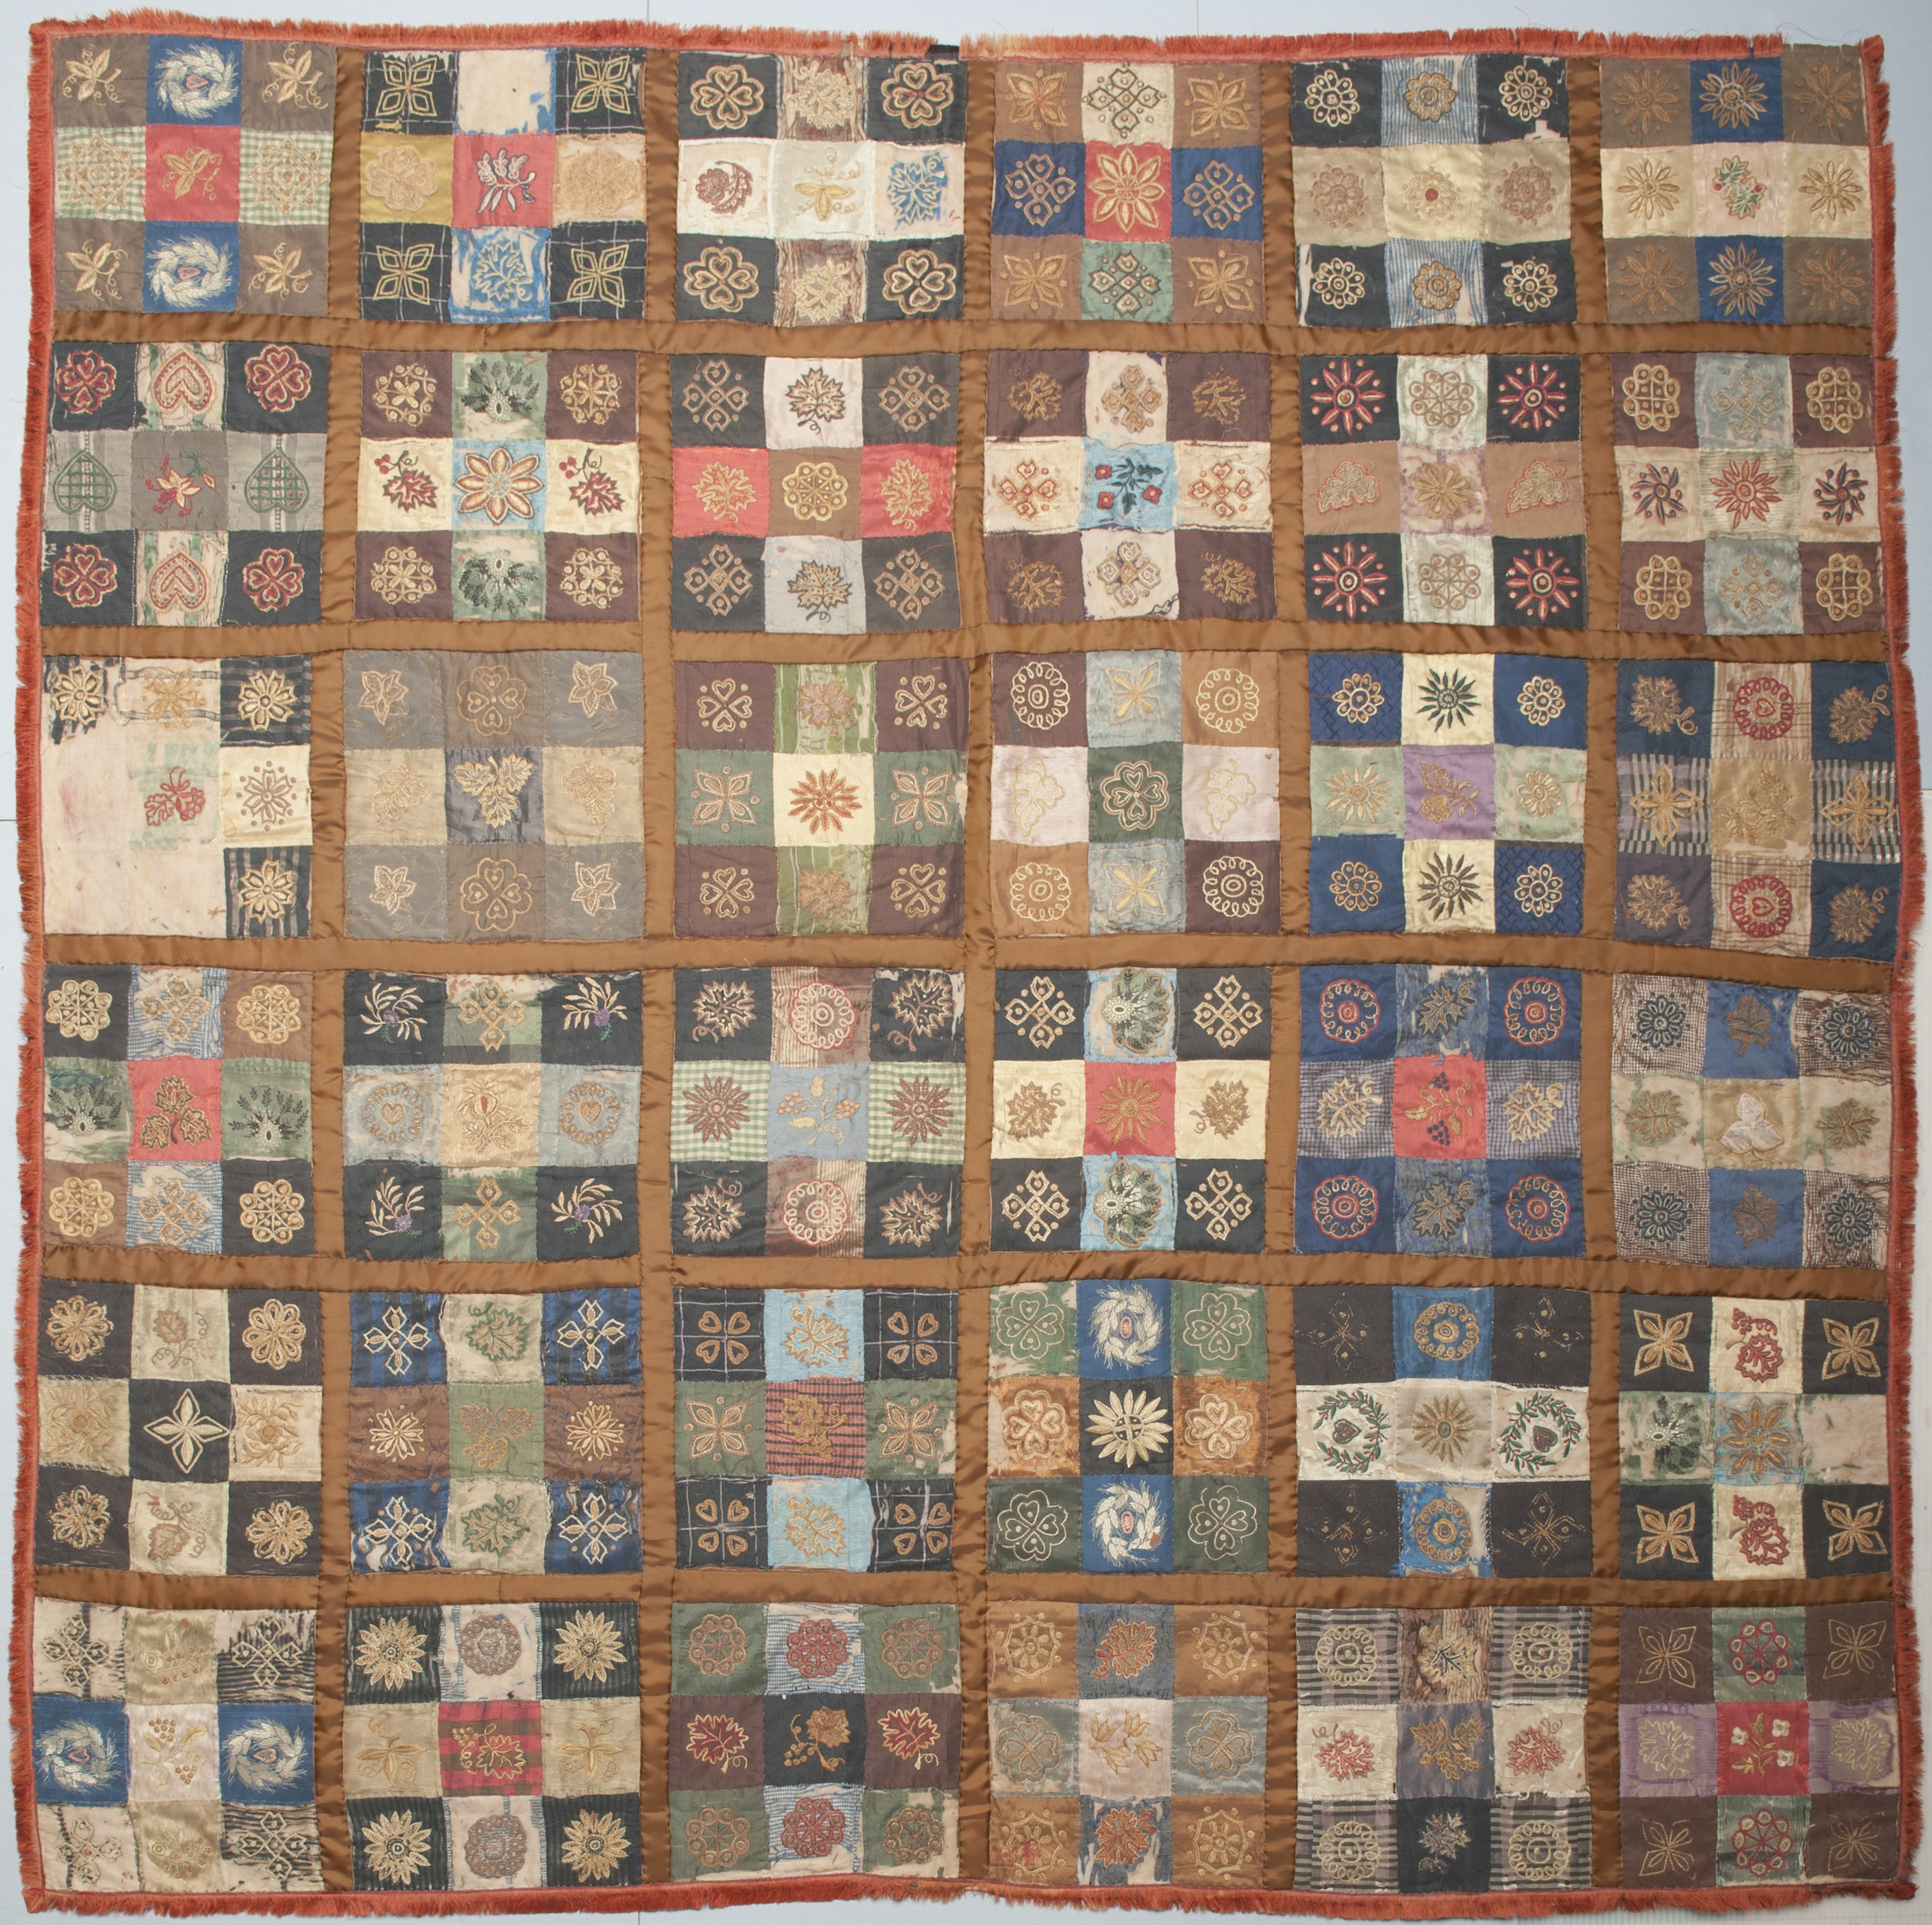 Picture of Pieced Quilt, Smithsonian Anacostia Community Museum